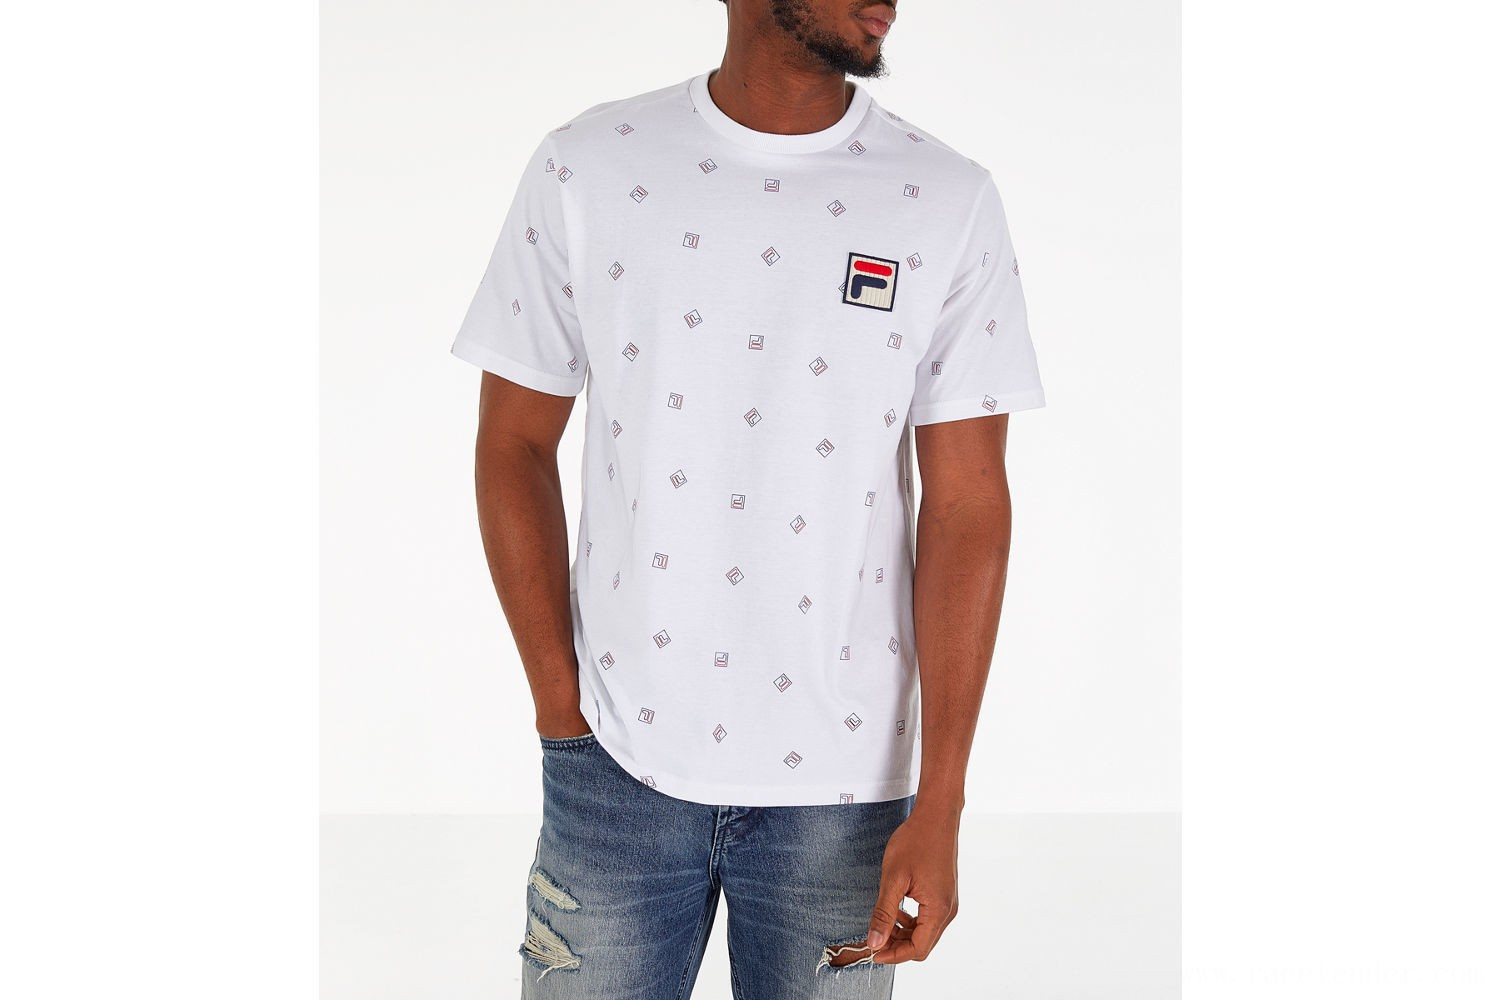 Fila Men's Reign T-Shirt - White